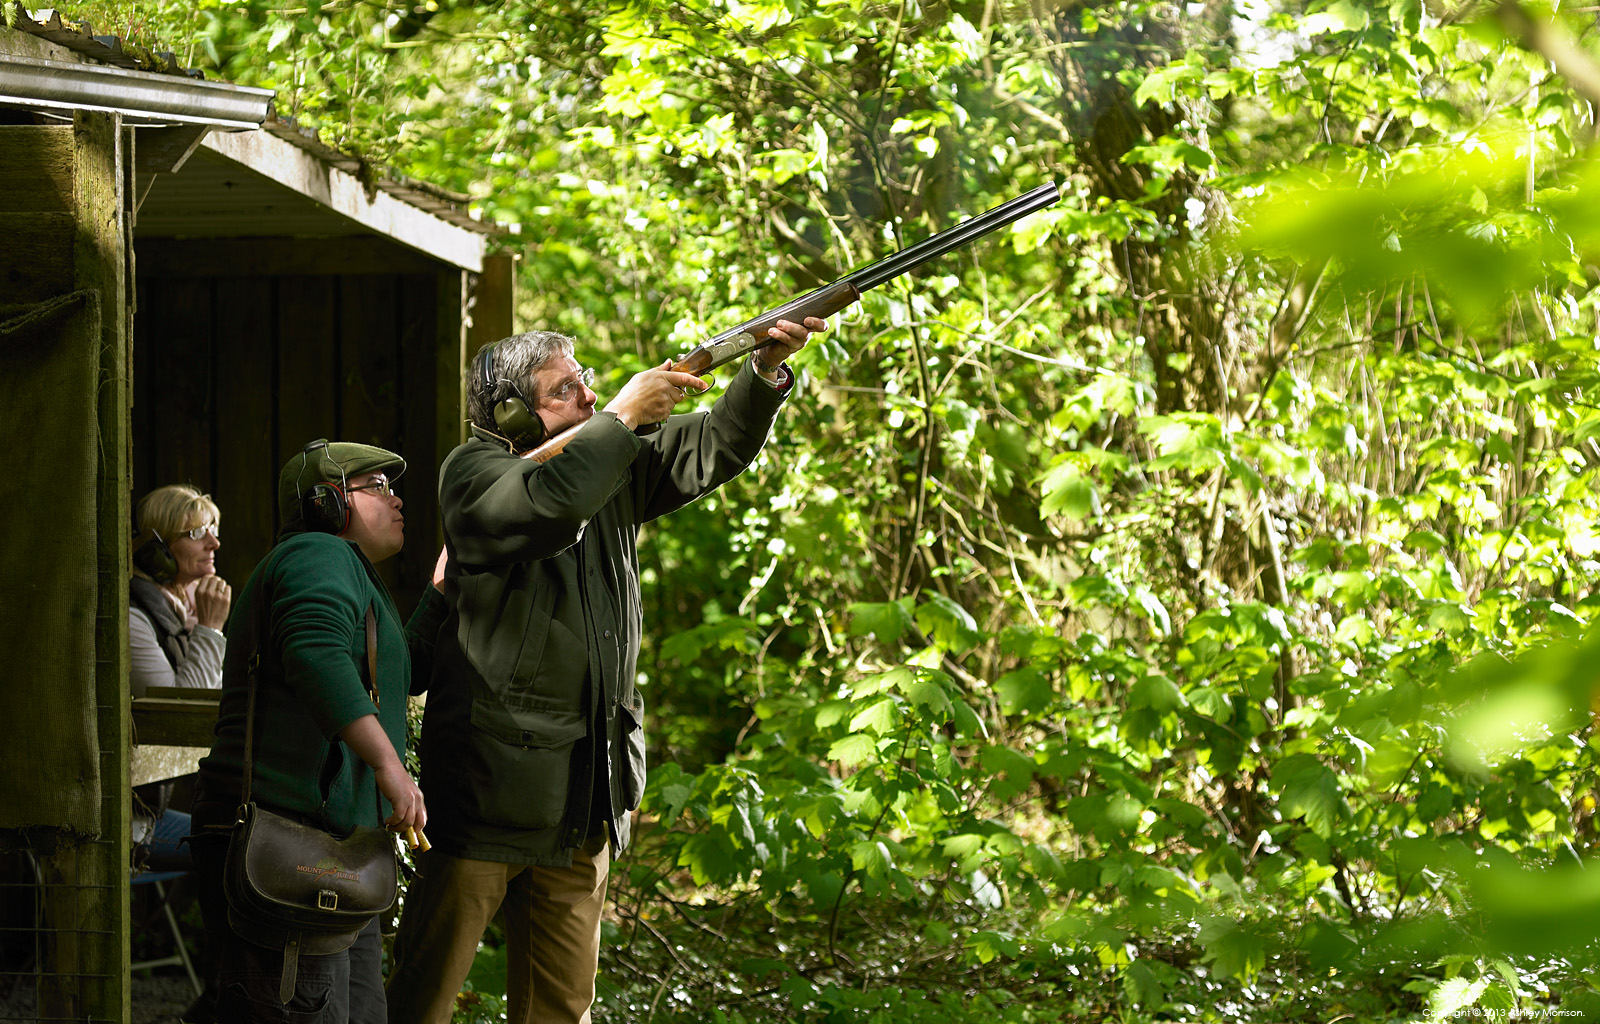 Clay pigeon shooting at Mount Juliet Country Estate in County Kilkenny by Ashley Morrison.